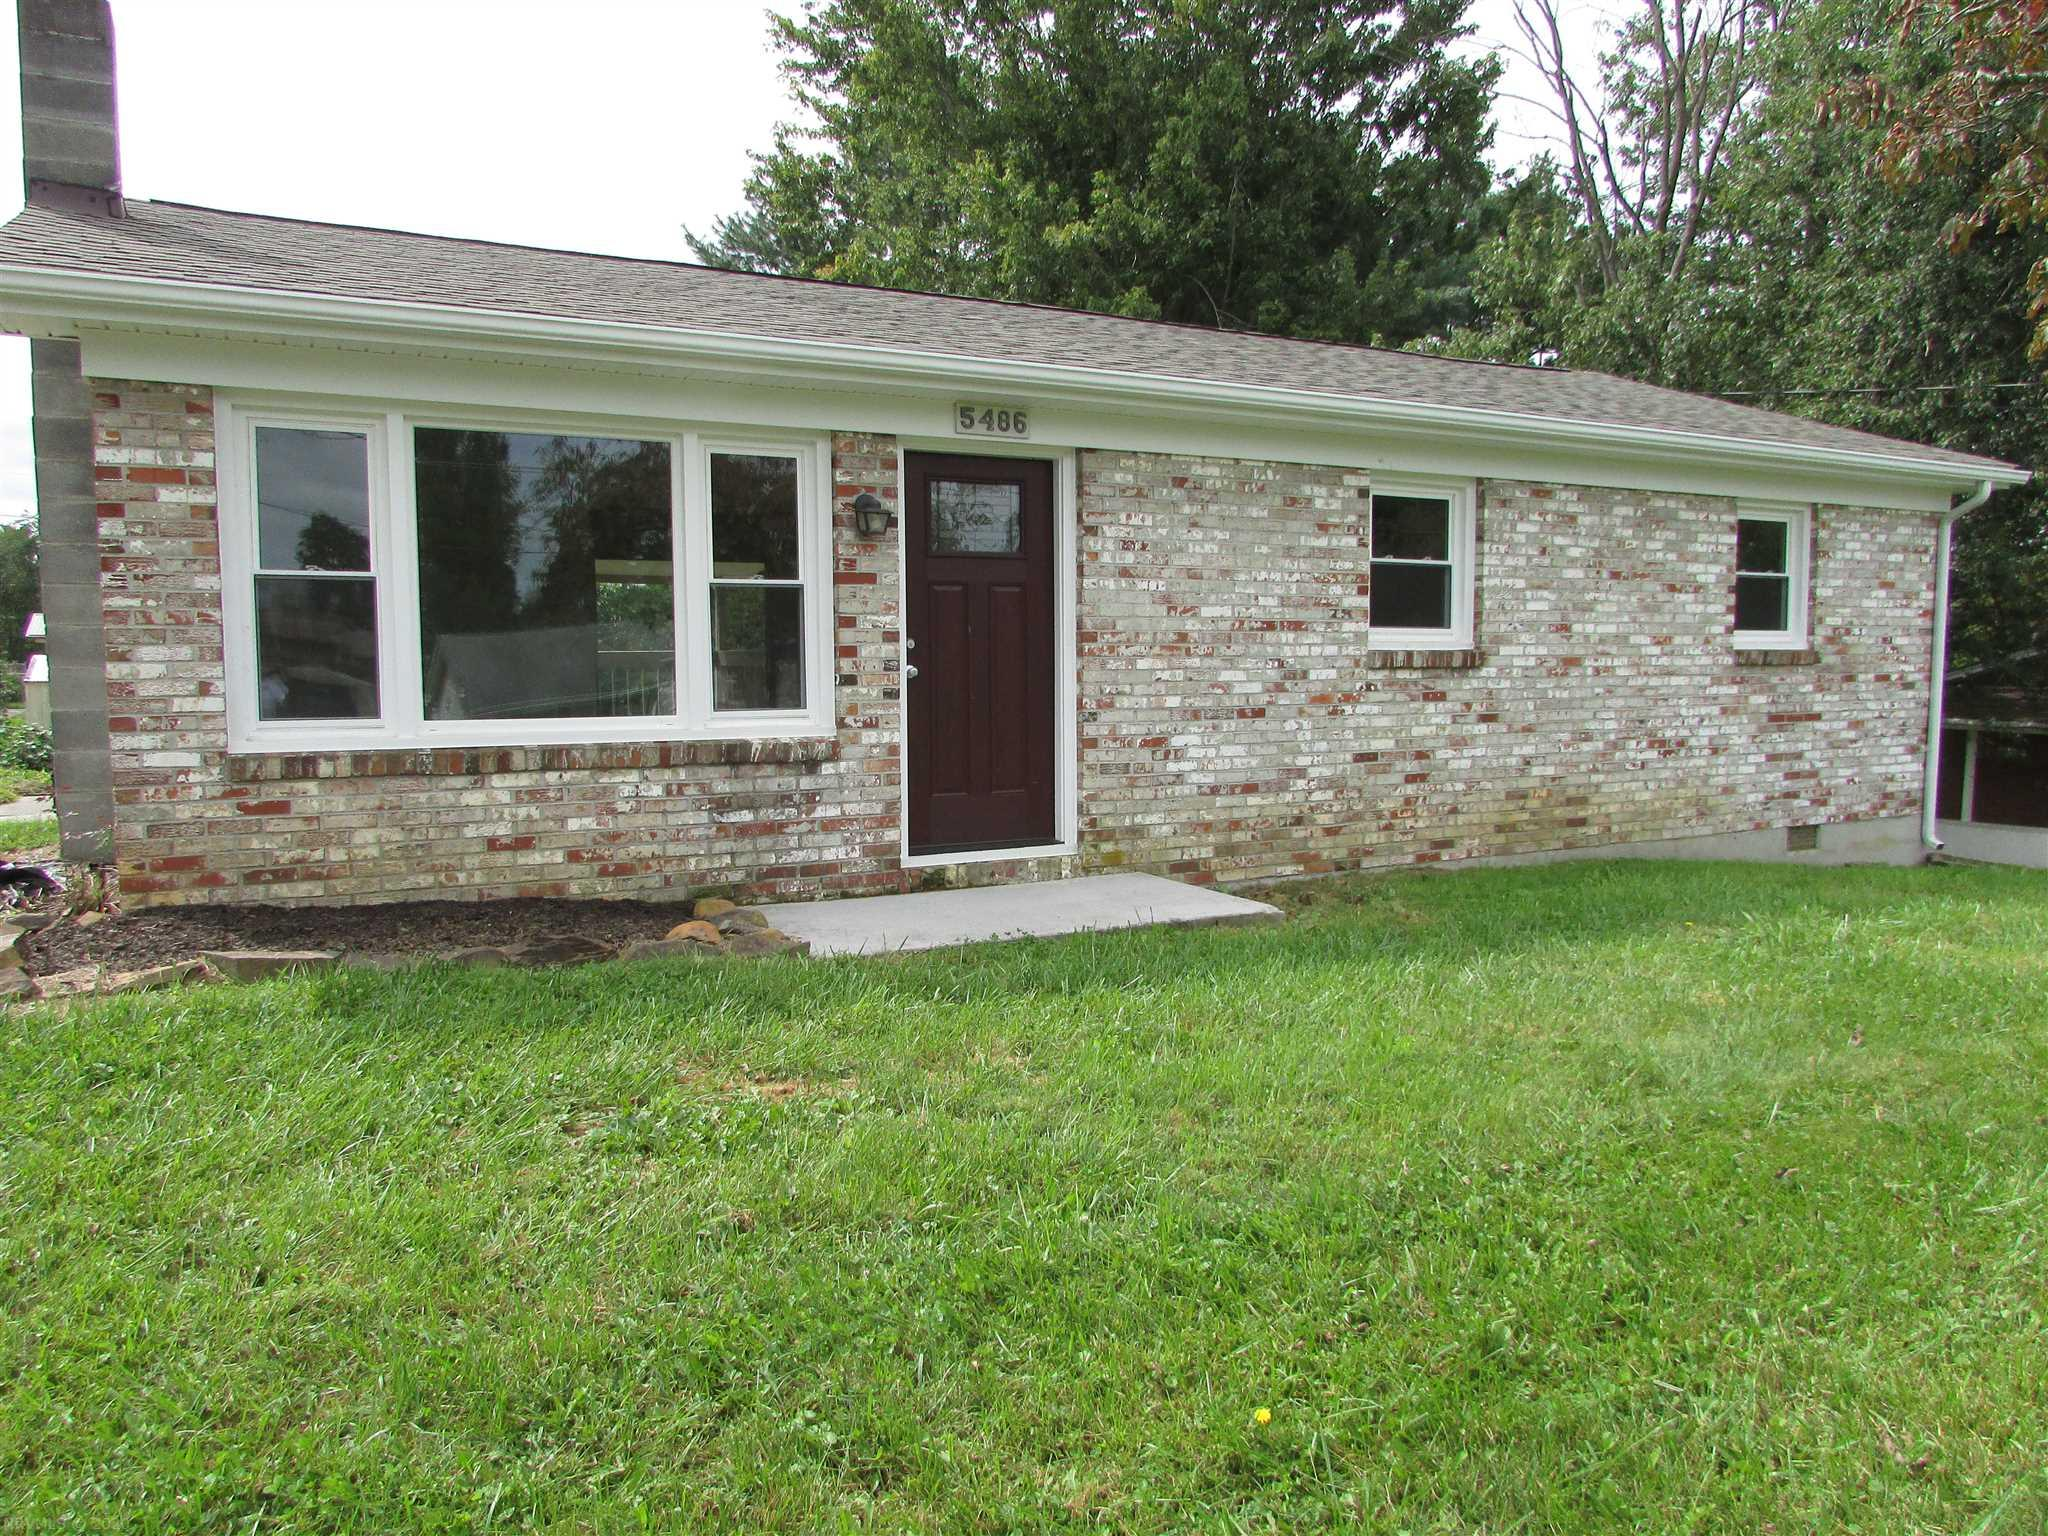 Completely remodeled three bedrooms,1 bath brick ranch. New roof ,new heat pump, all inside redone. New floors, new drywall, new insulation, all new Custom kitchen cabinets, and appliances. New bathroom. All new wiring. Come view this like new home before it is gone.